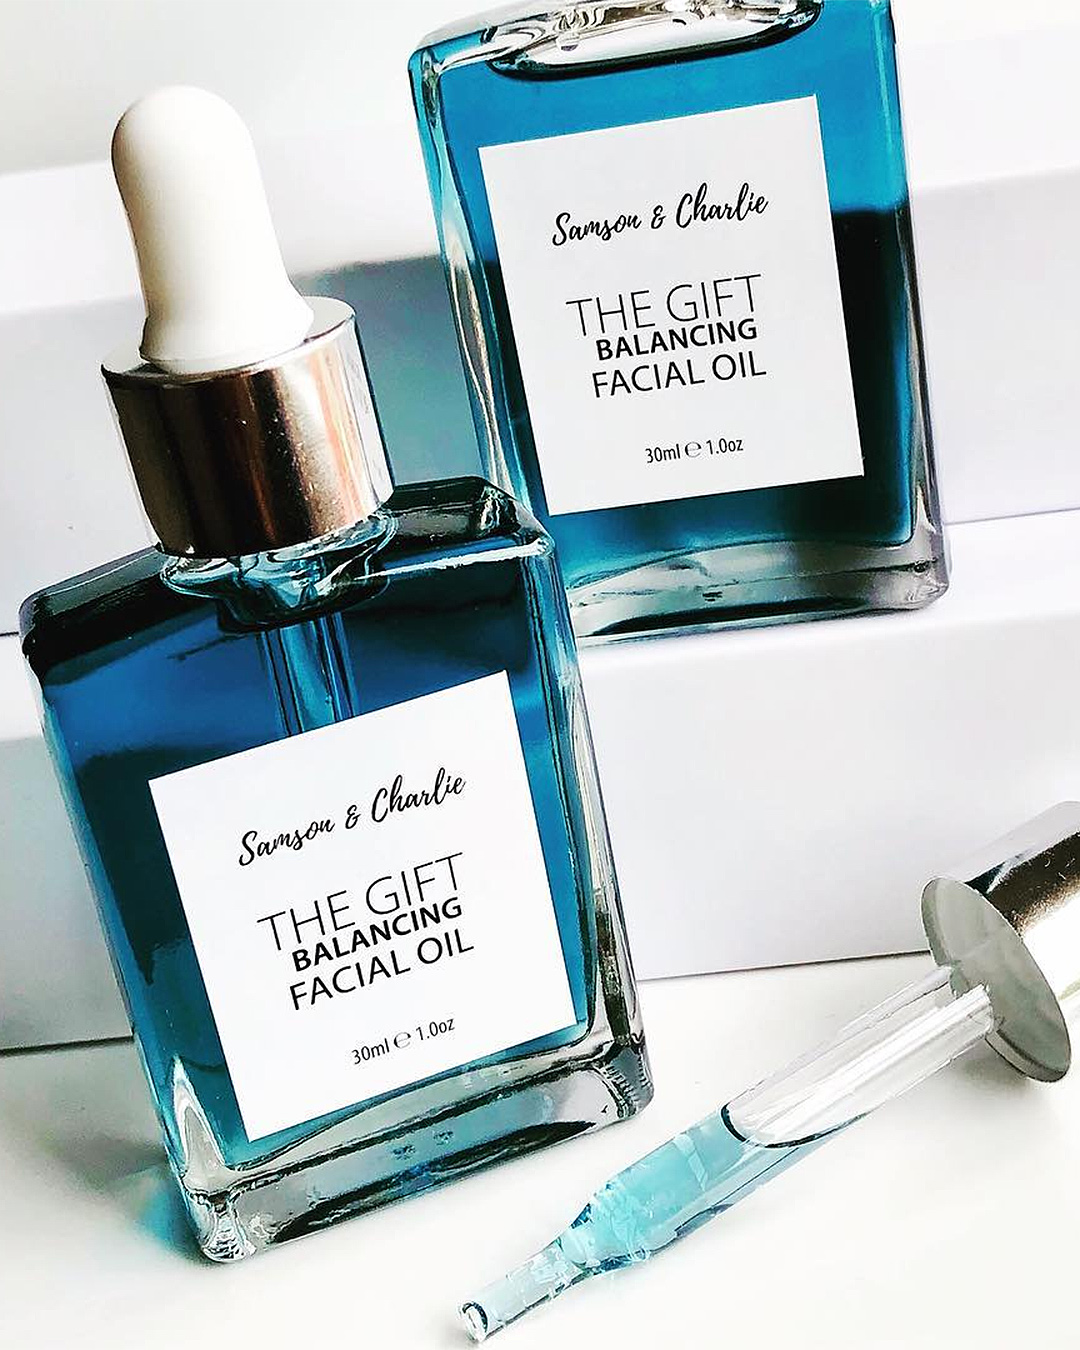 The gift Blue Tansy Balancing Facial oil from Samson & Charlie.